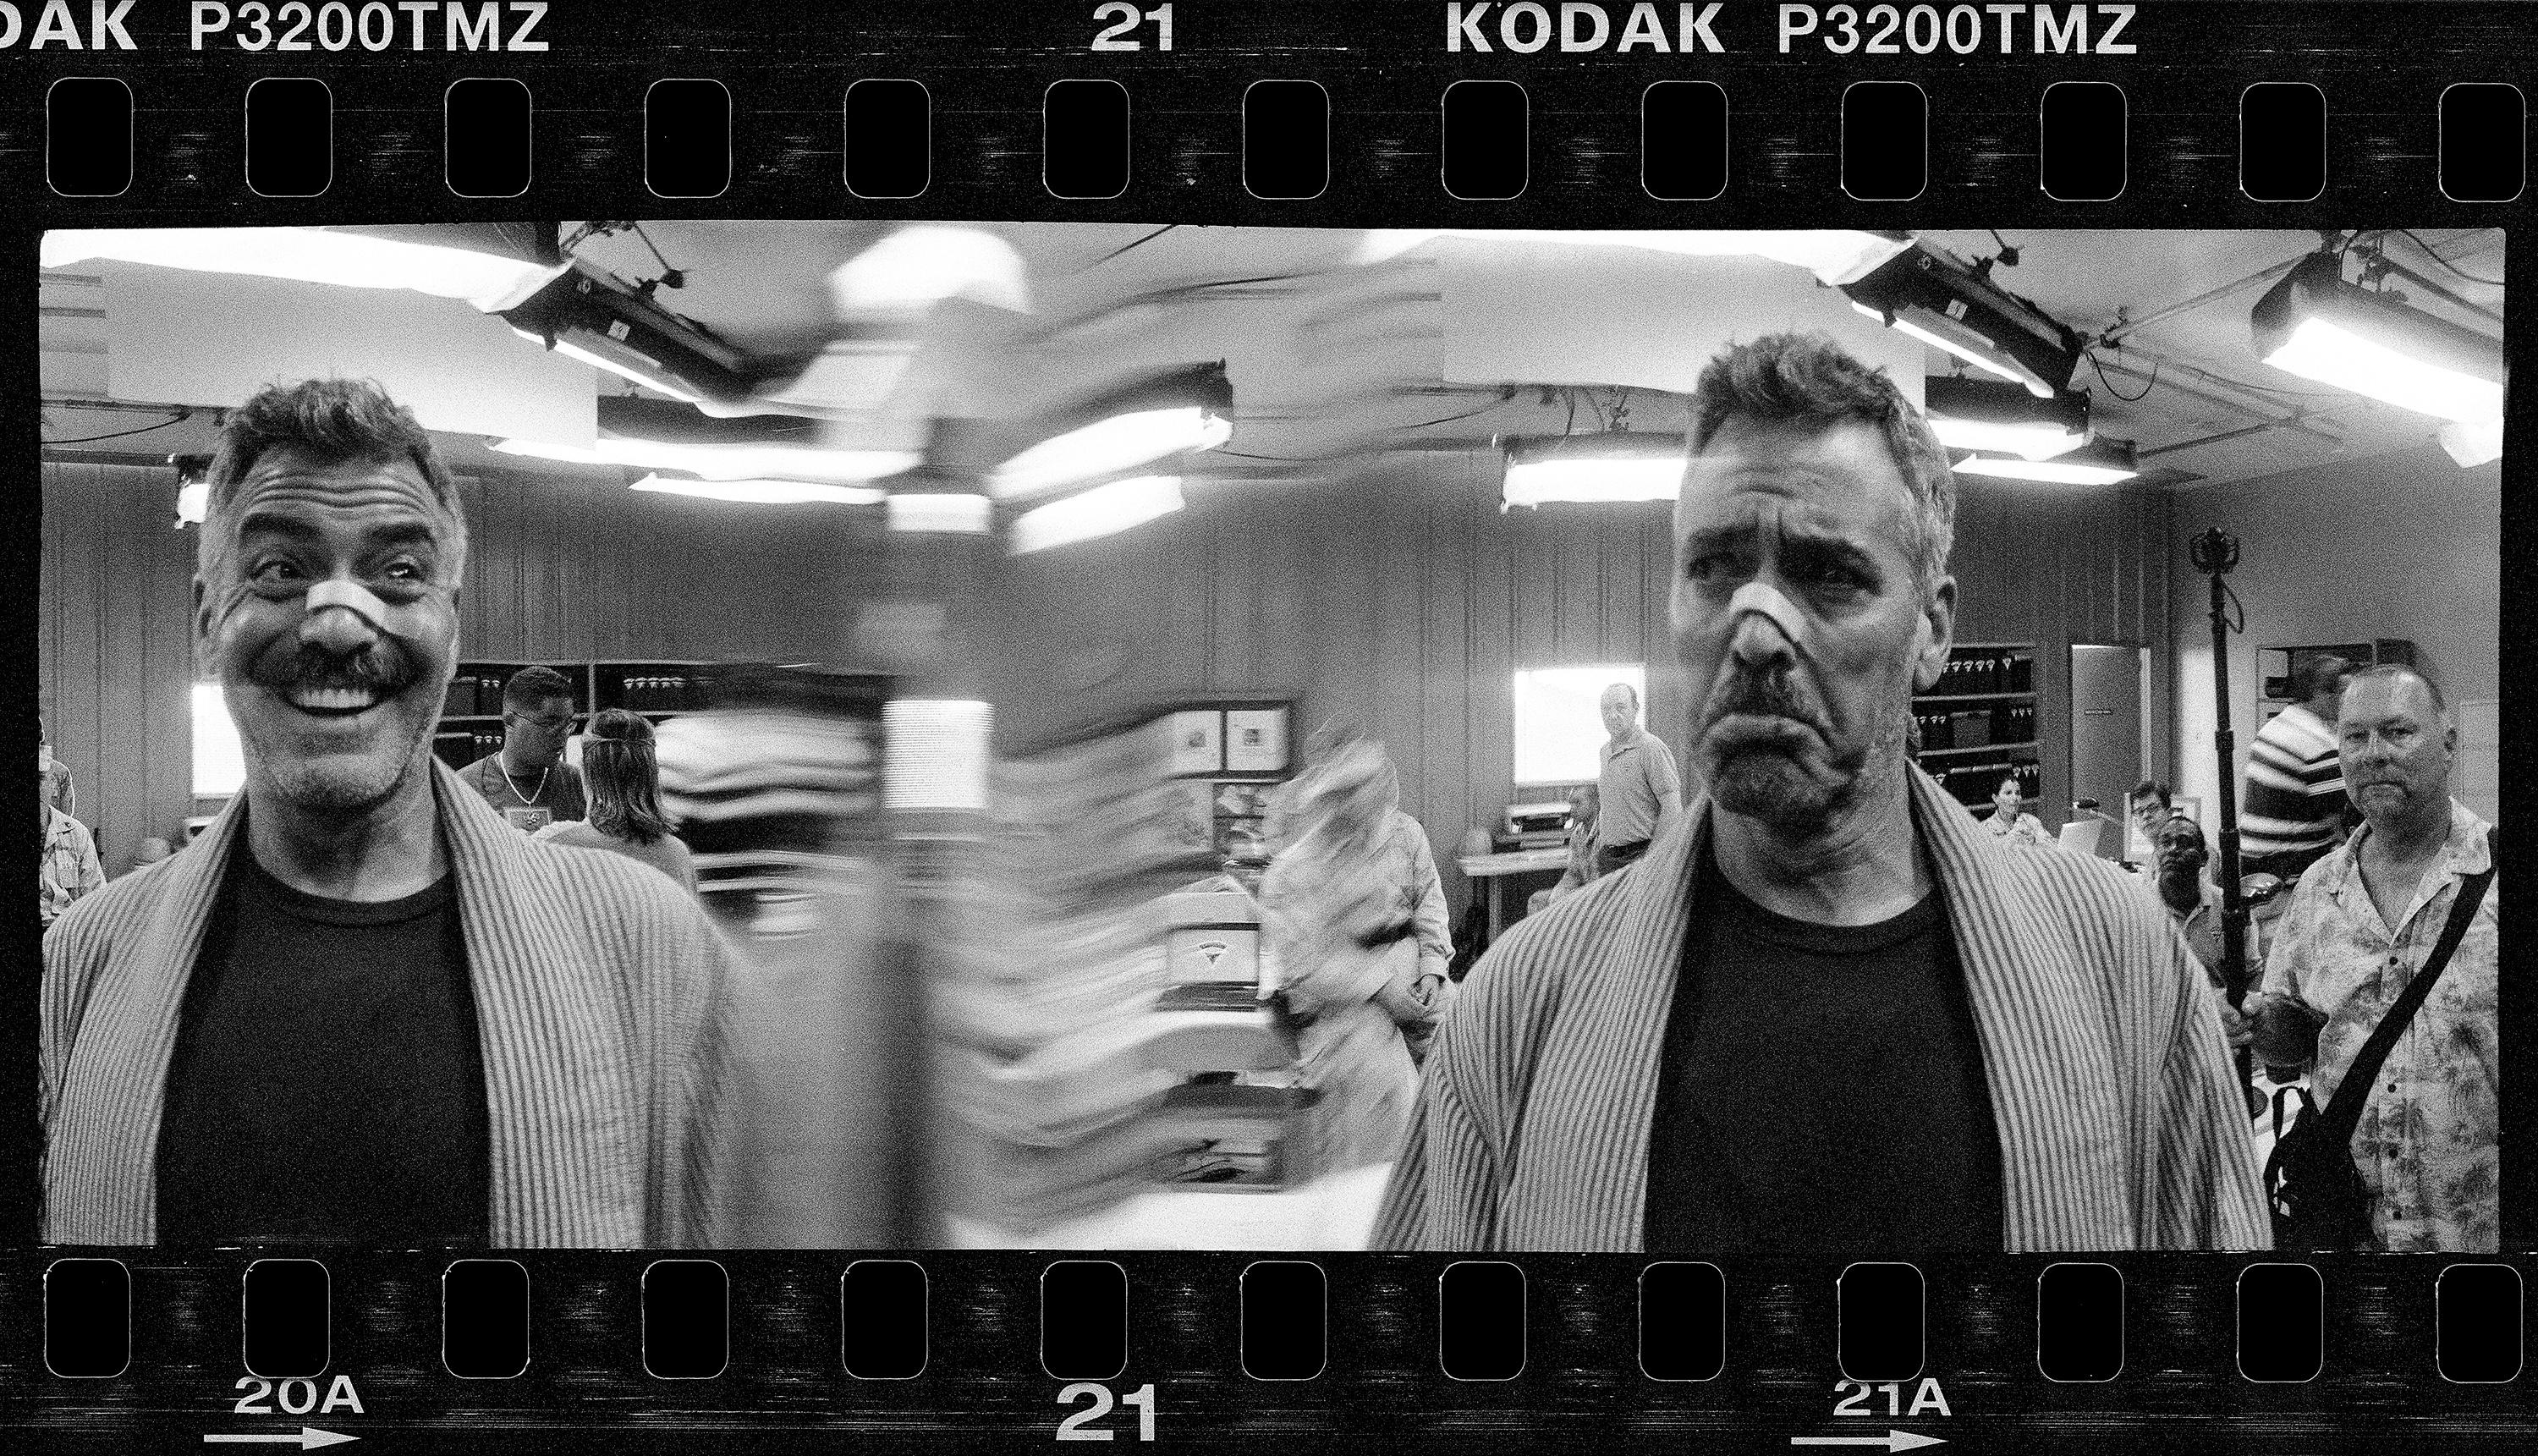 George Clooney with a plaster on his nose: Jeff Bridges' best photograph